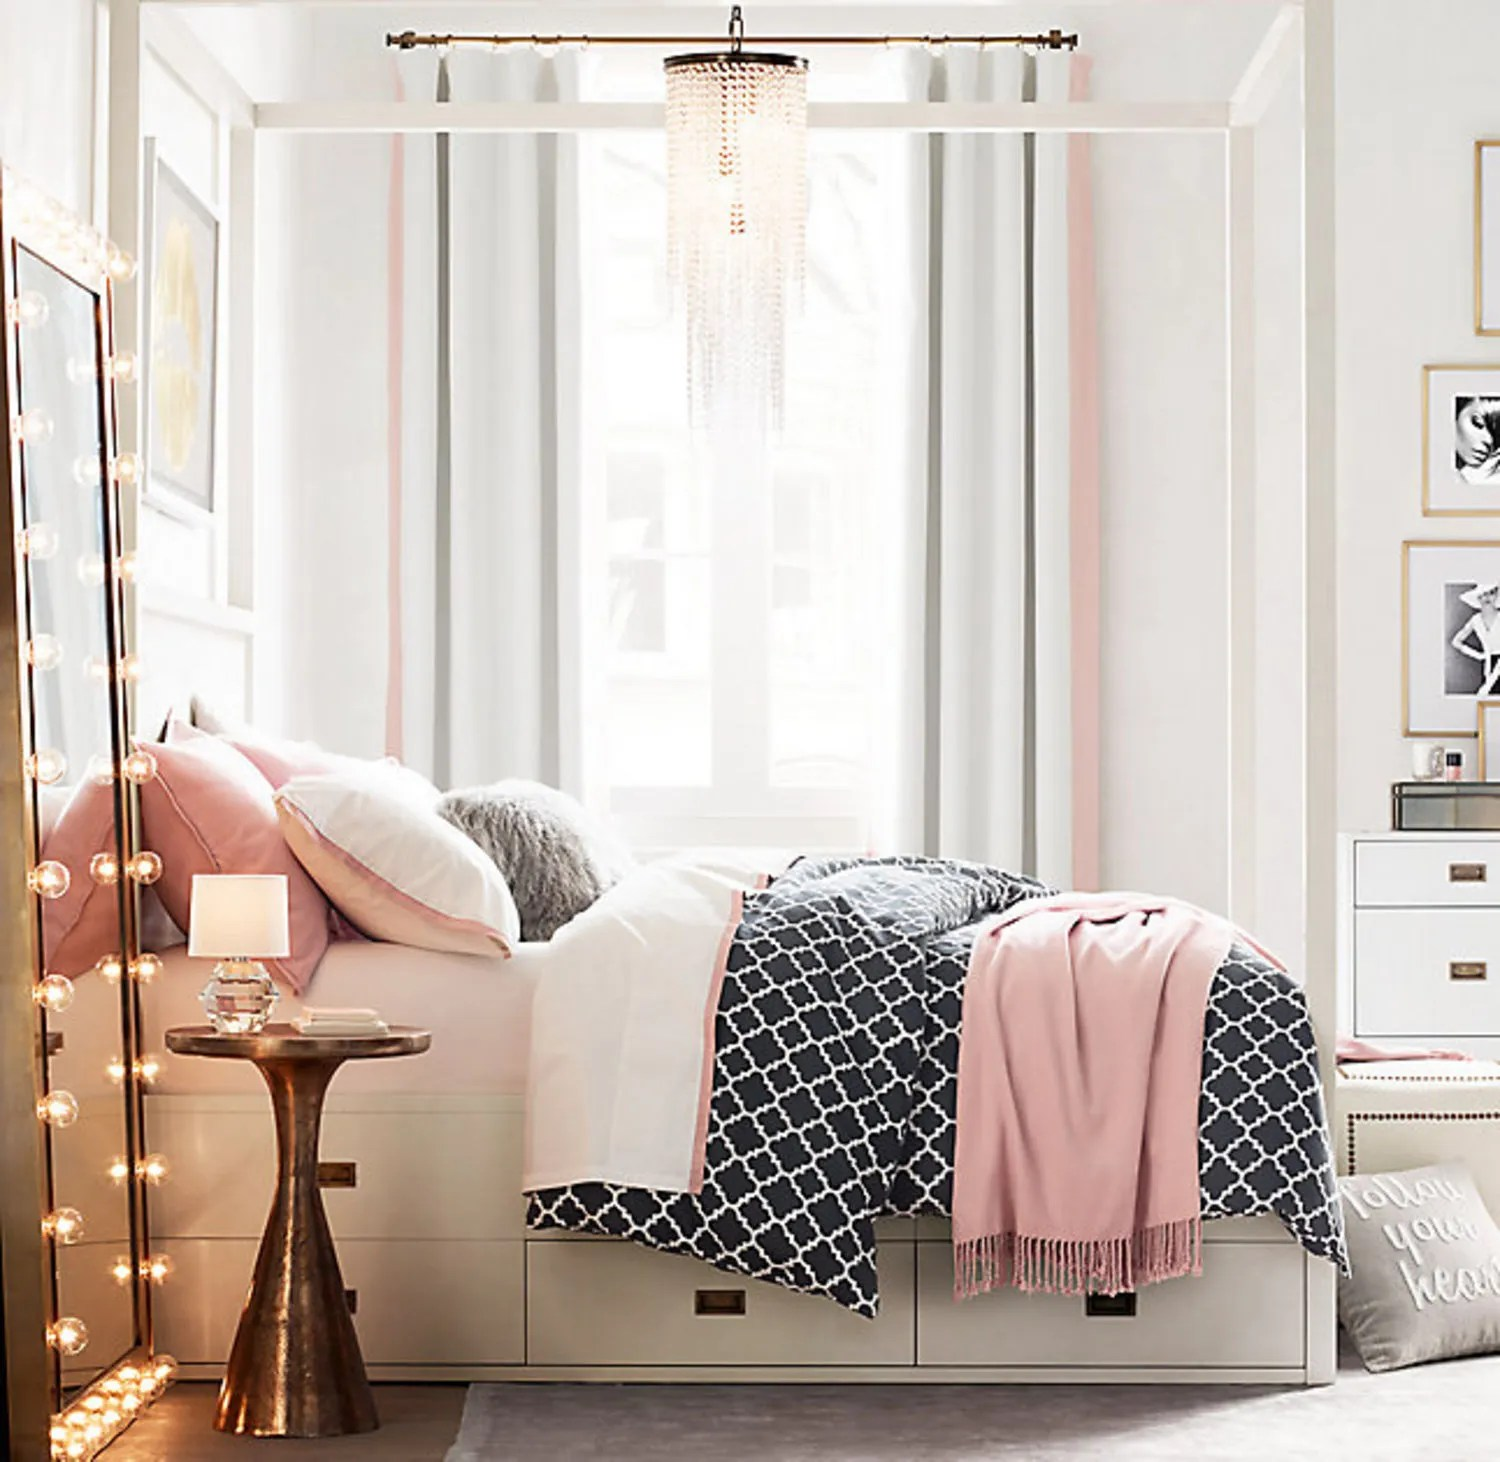 13 Things Your Tiny Apartment Needs From Restoration ... on Small Bedroom Ideas For Teens  id=51251